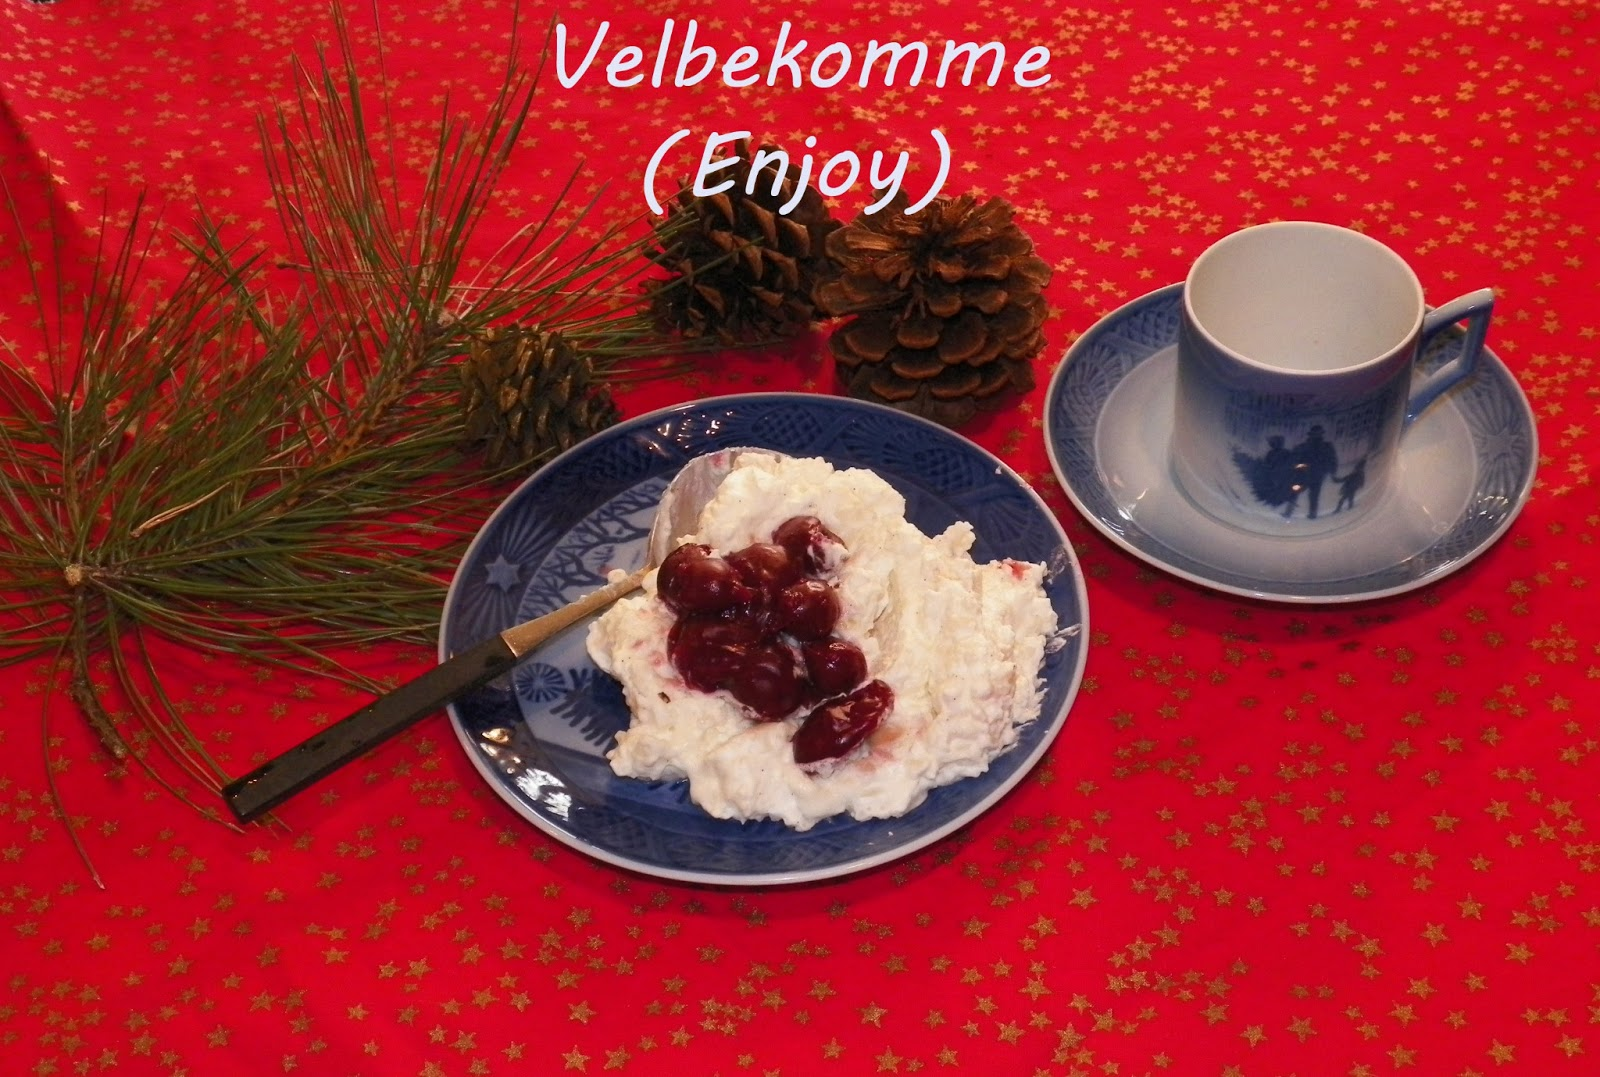 Scandinavian today cooking show danish christmas rice pudding with below is a simple danish christmas rice pudding with cherry sauce recipe the first stage is to make the rice pudding the second stage is to make the forumfinder Image collections